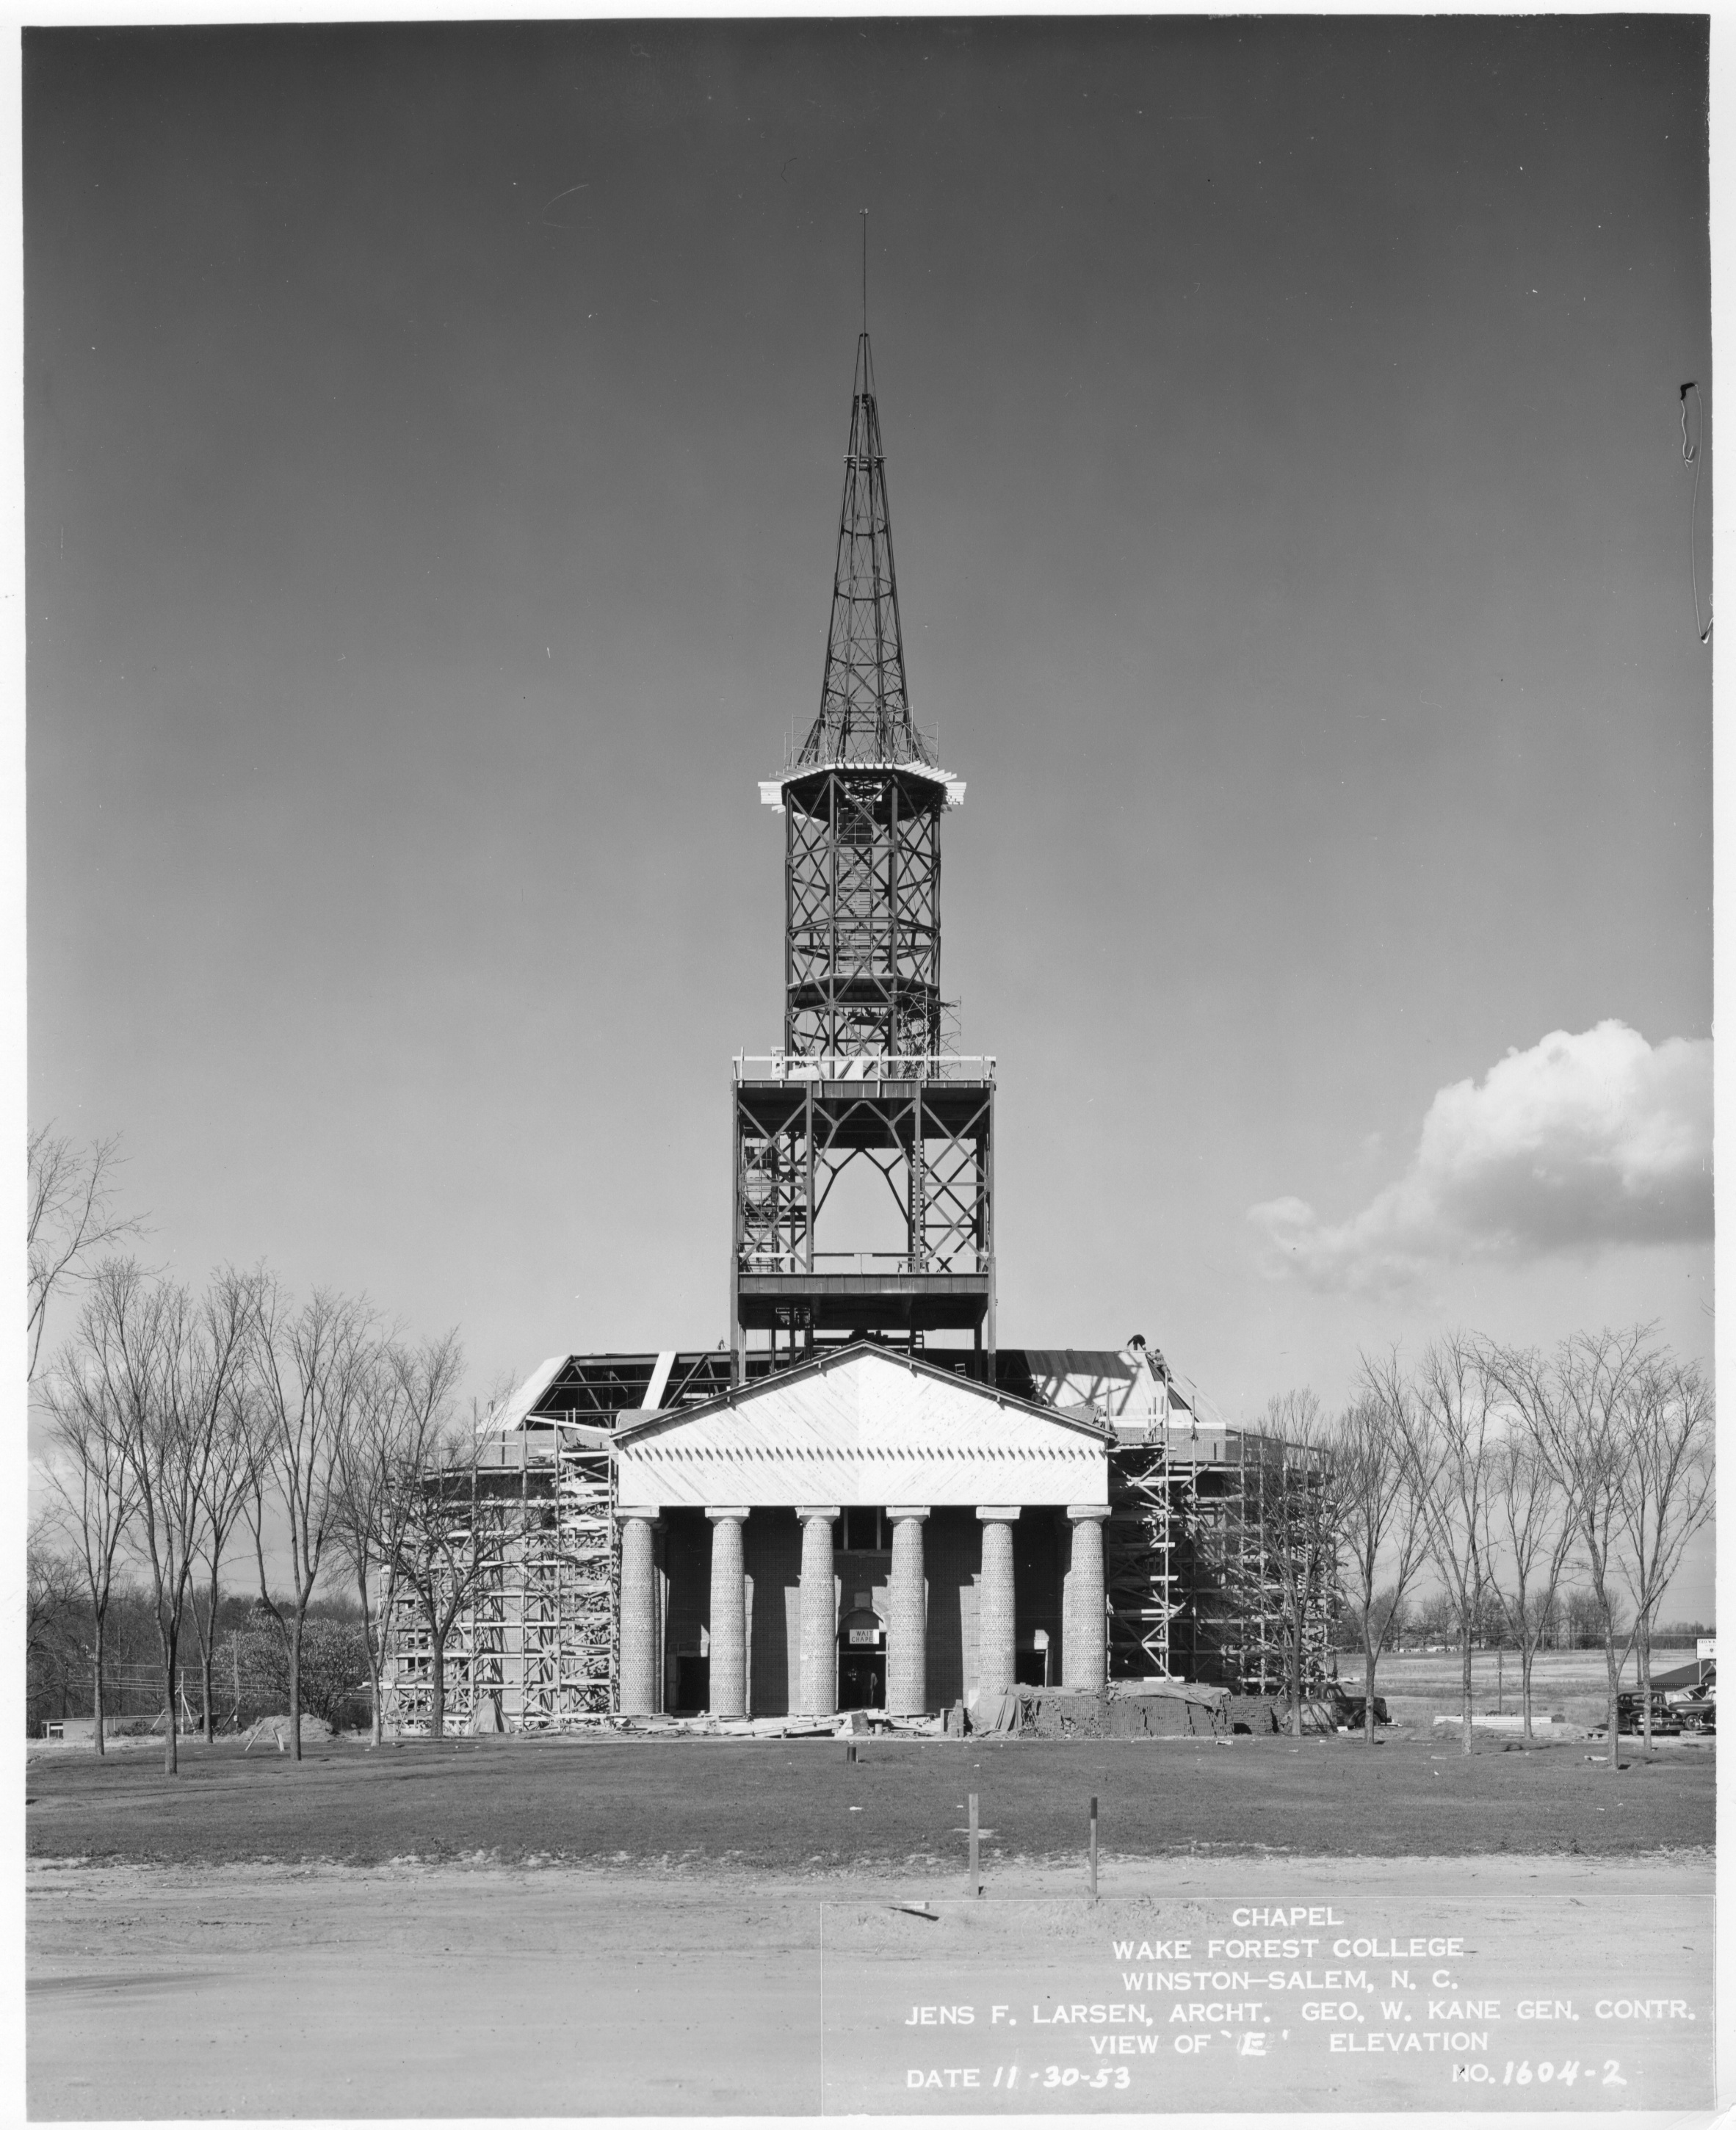 Wake Forest University chapel under construction in 1953